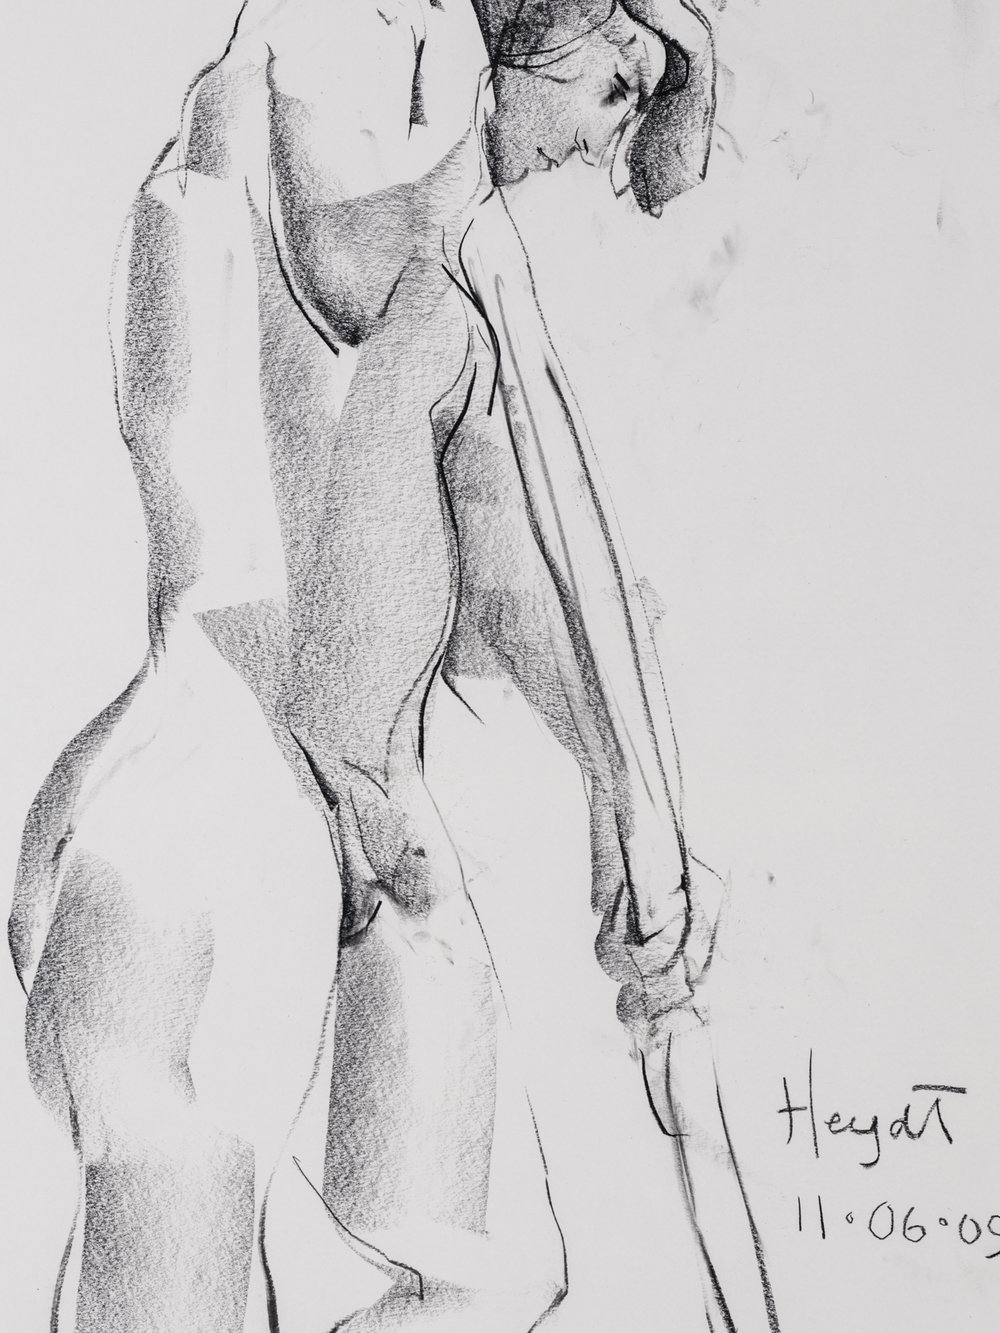 FigureDrawing-wHEYDT-14.jpg